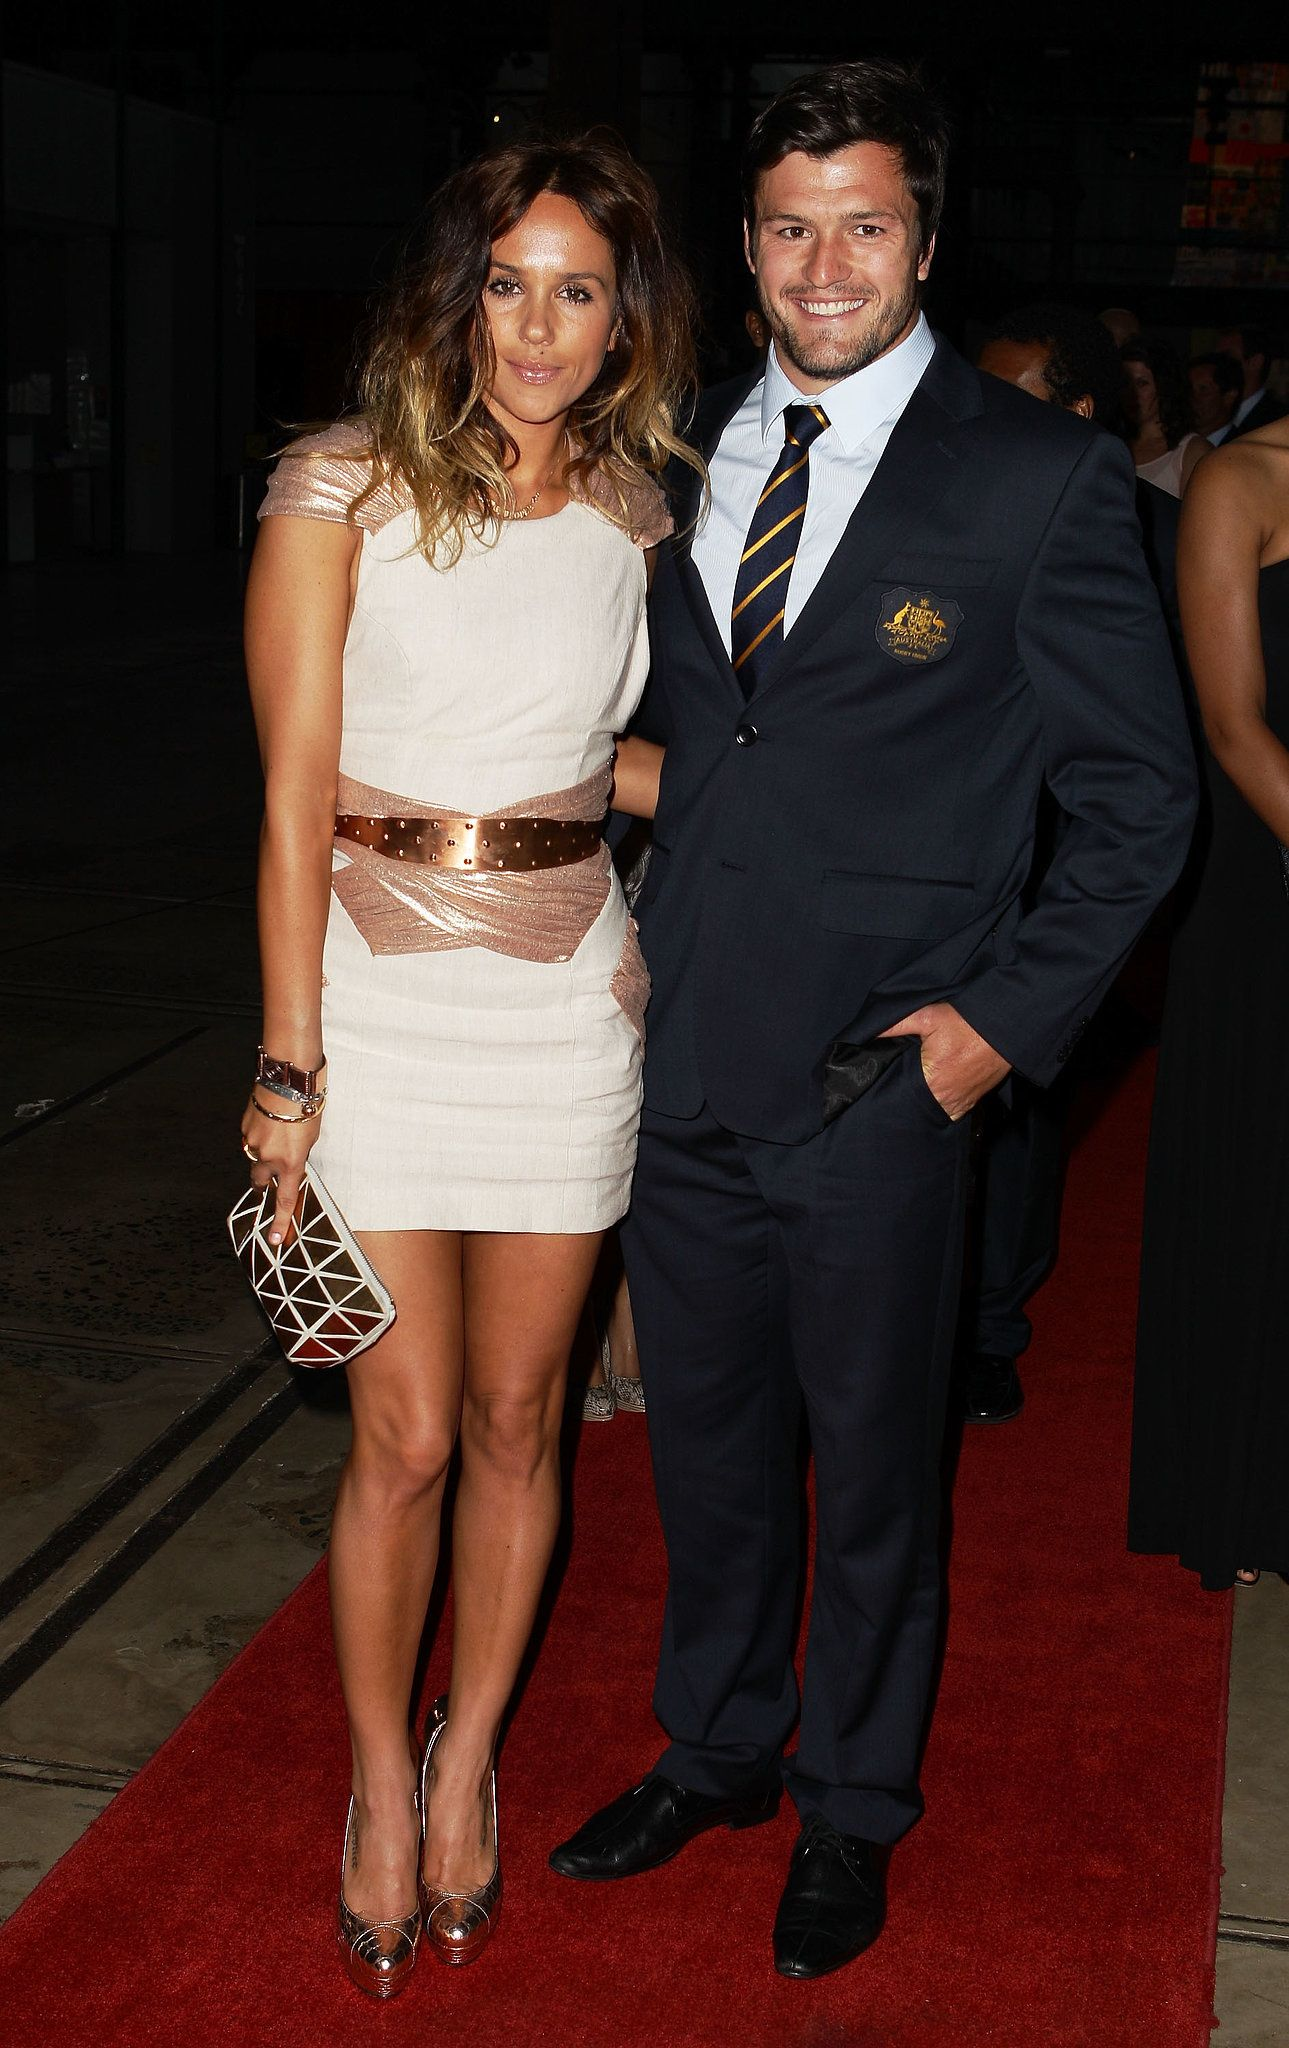 Edwards and Adam Ashley Cooper at the John Eales Medal in 2010